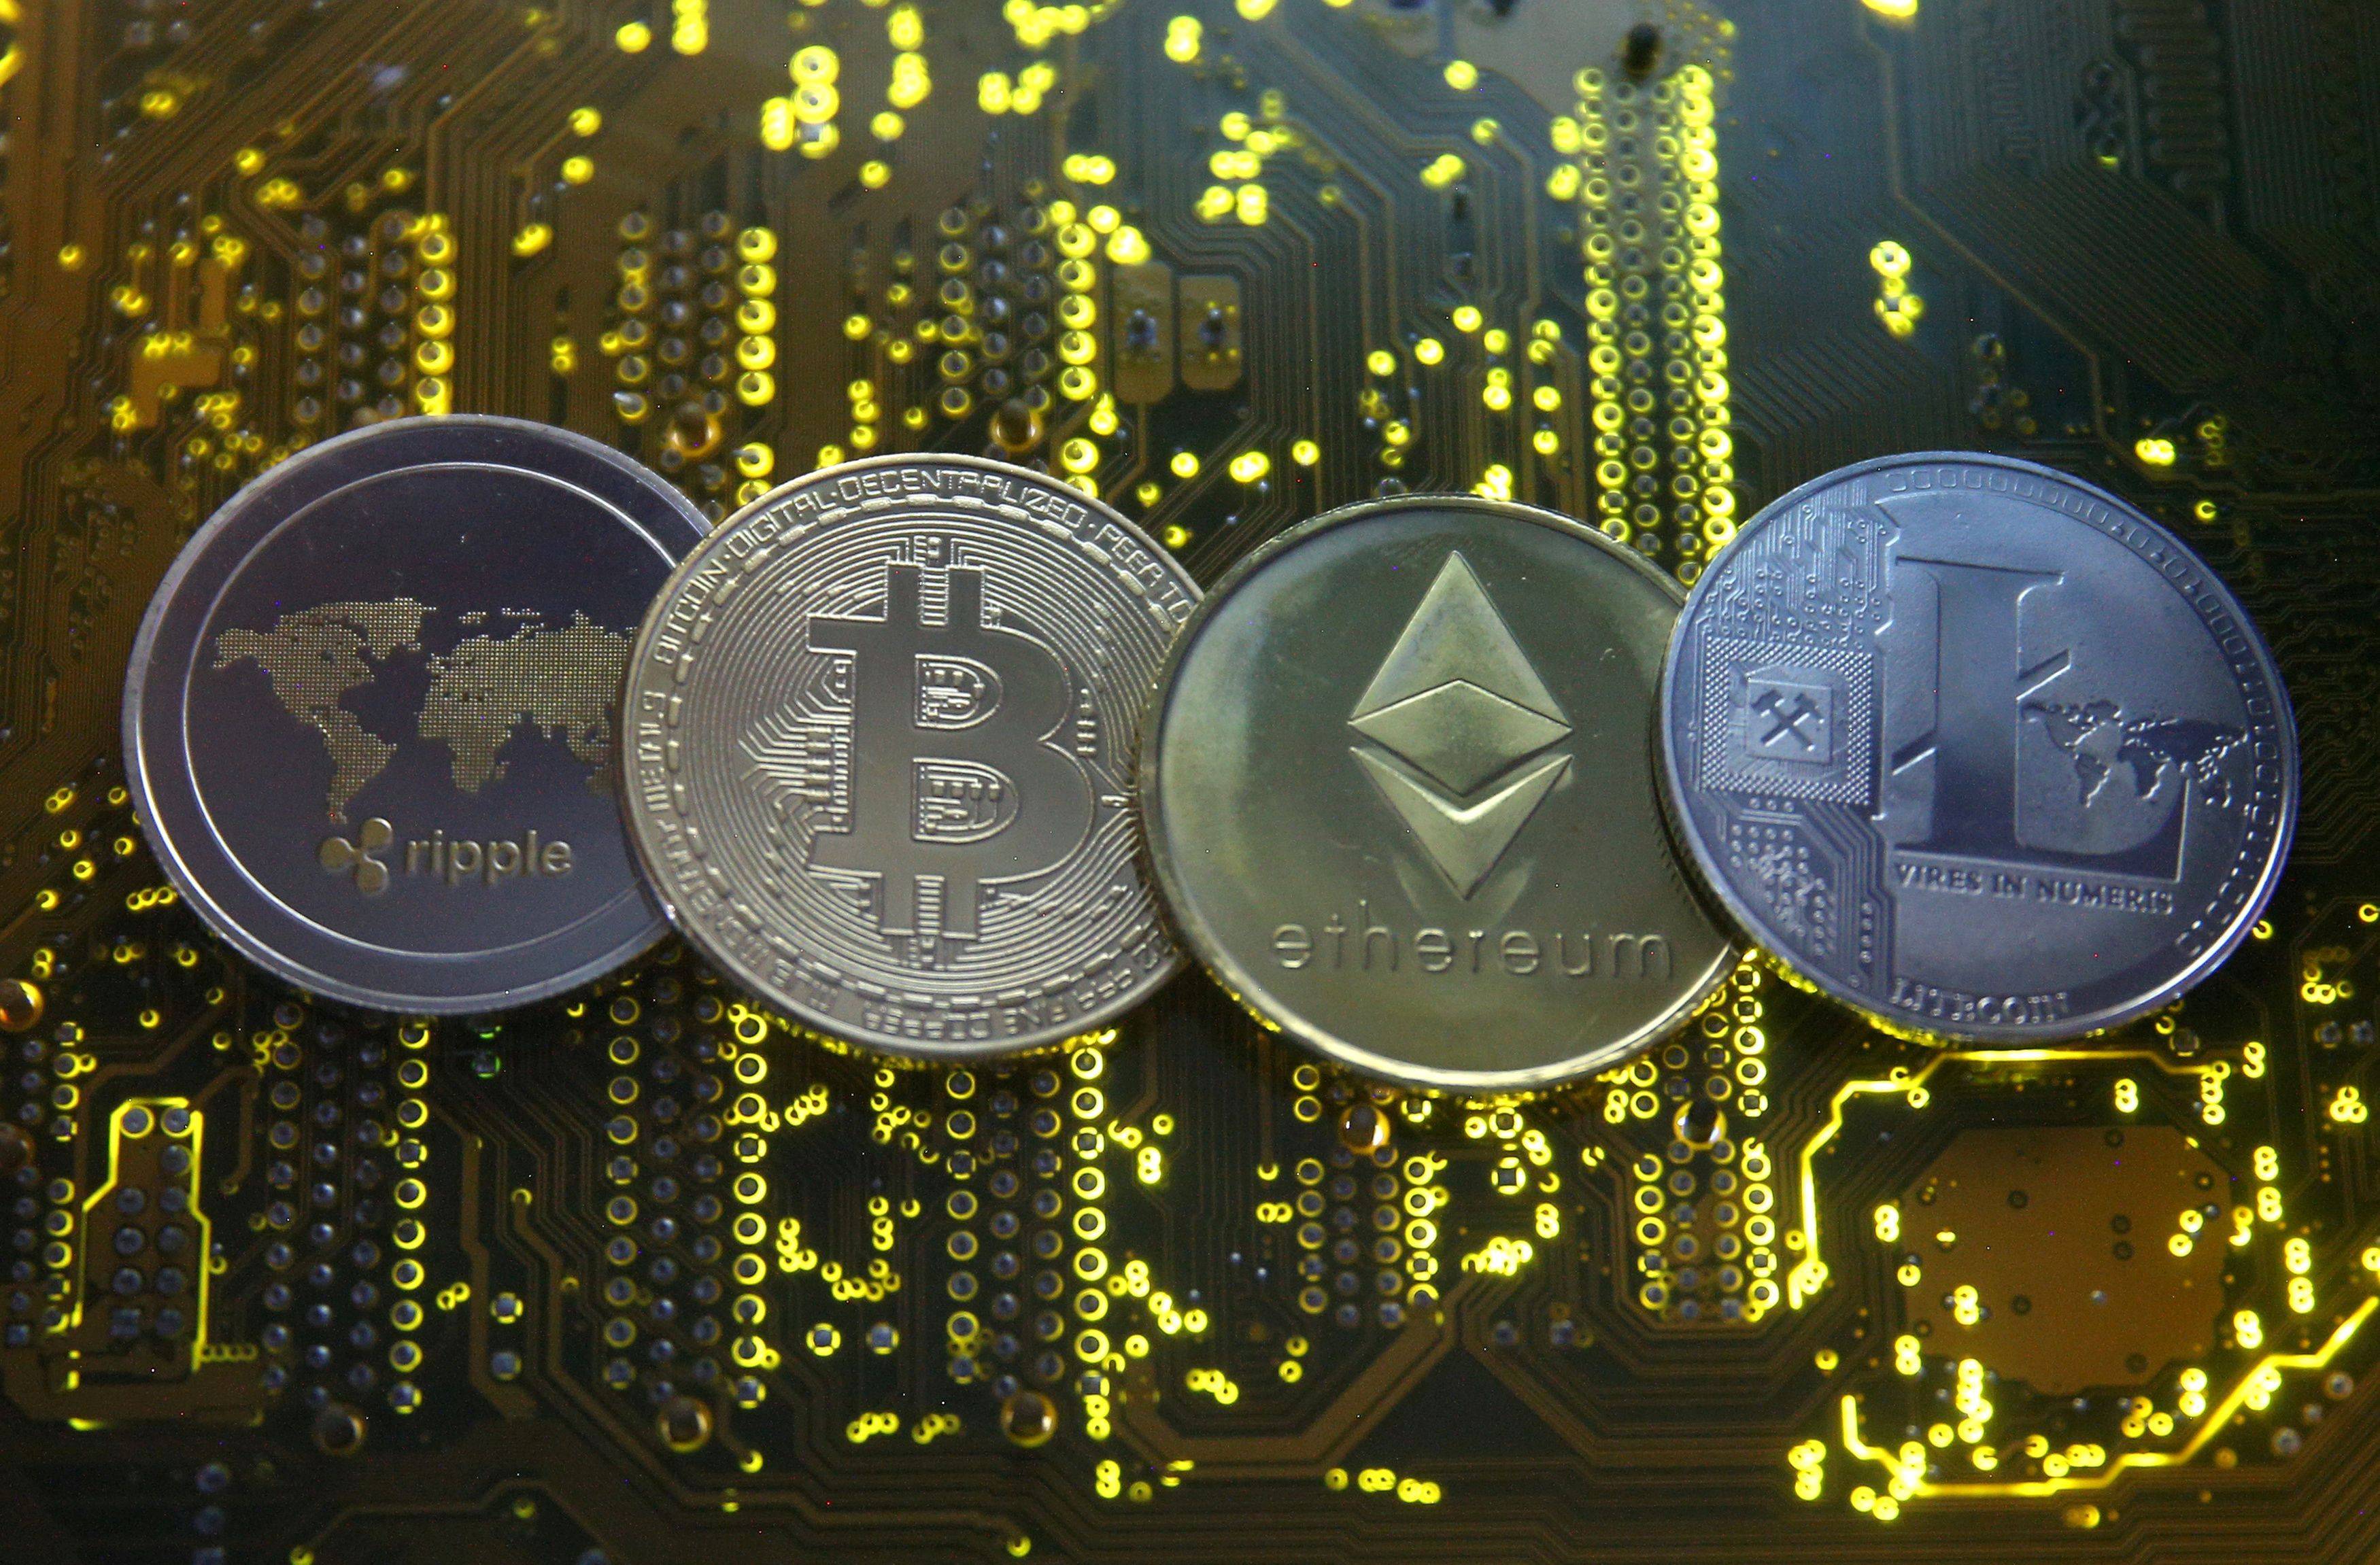 Representations of the Ripple, bitcoin, etherum and Litecoin virtual currencies are seen on a PC motherboard in this illustration picture, February 14, 2018. REUTERS/Dado Ruvic/Illustration/File Photo